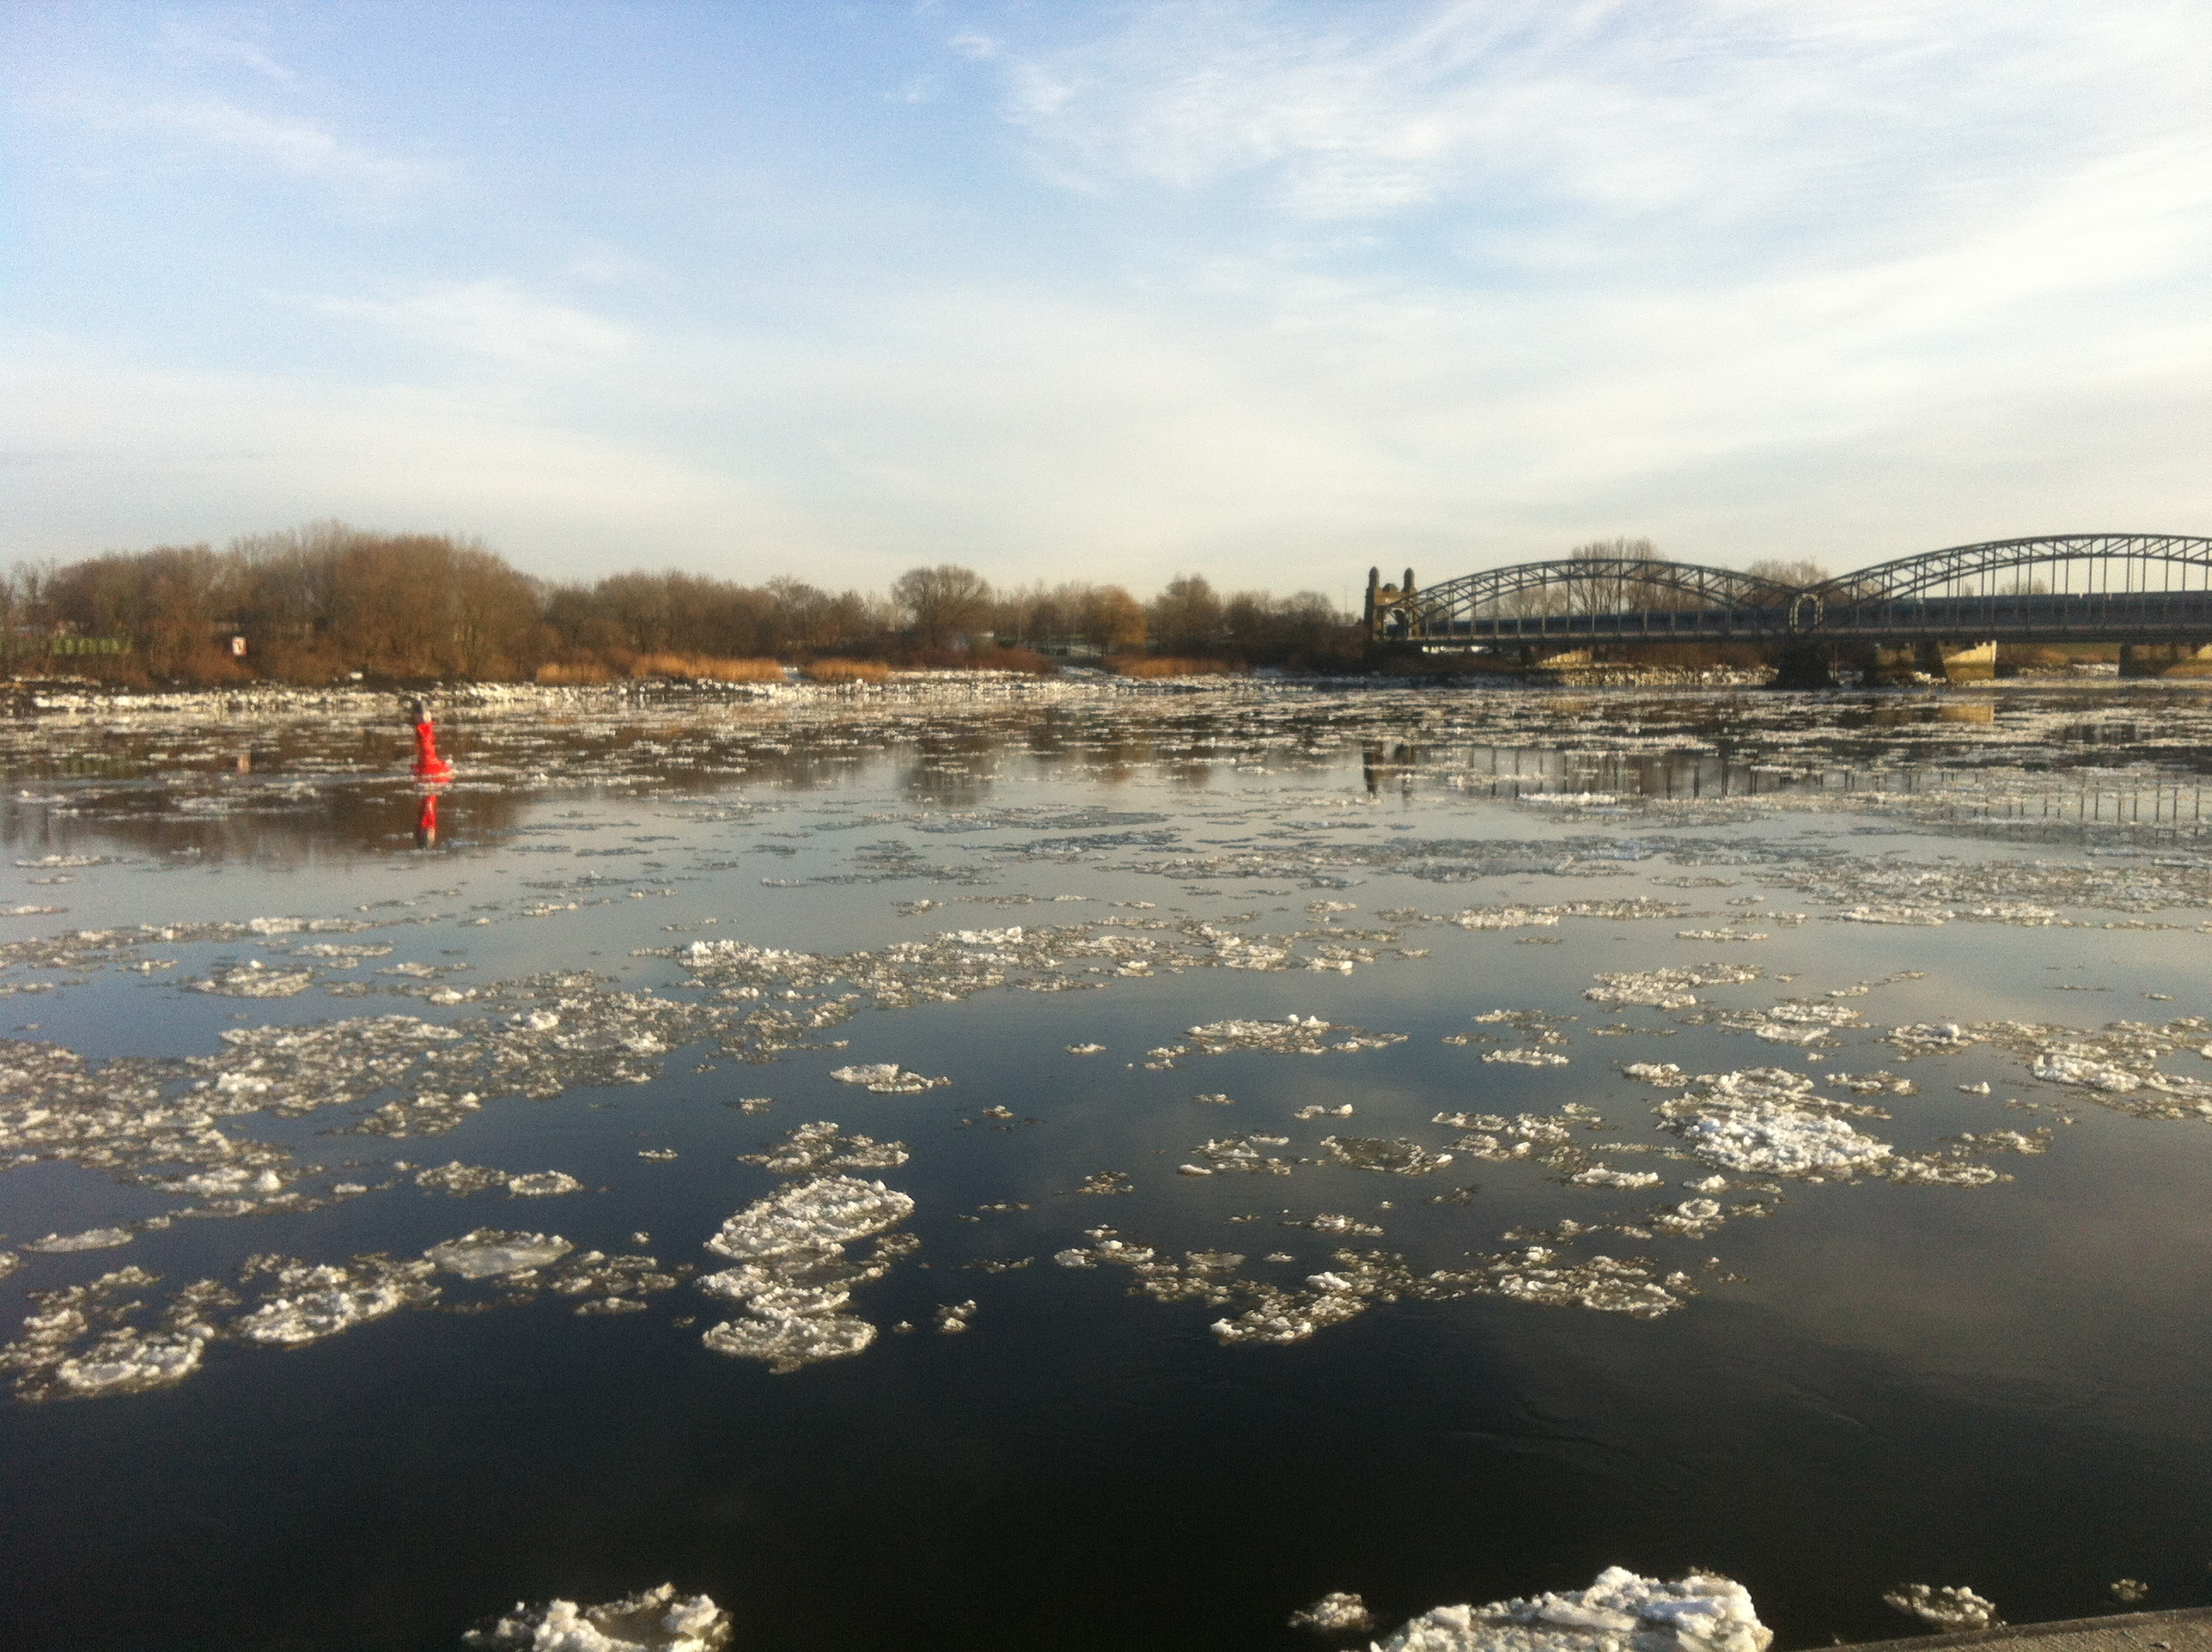 Ice on Elbe river in Hamburg. By Mirjam S. Glessmer